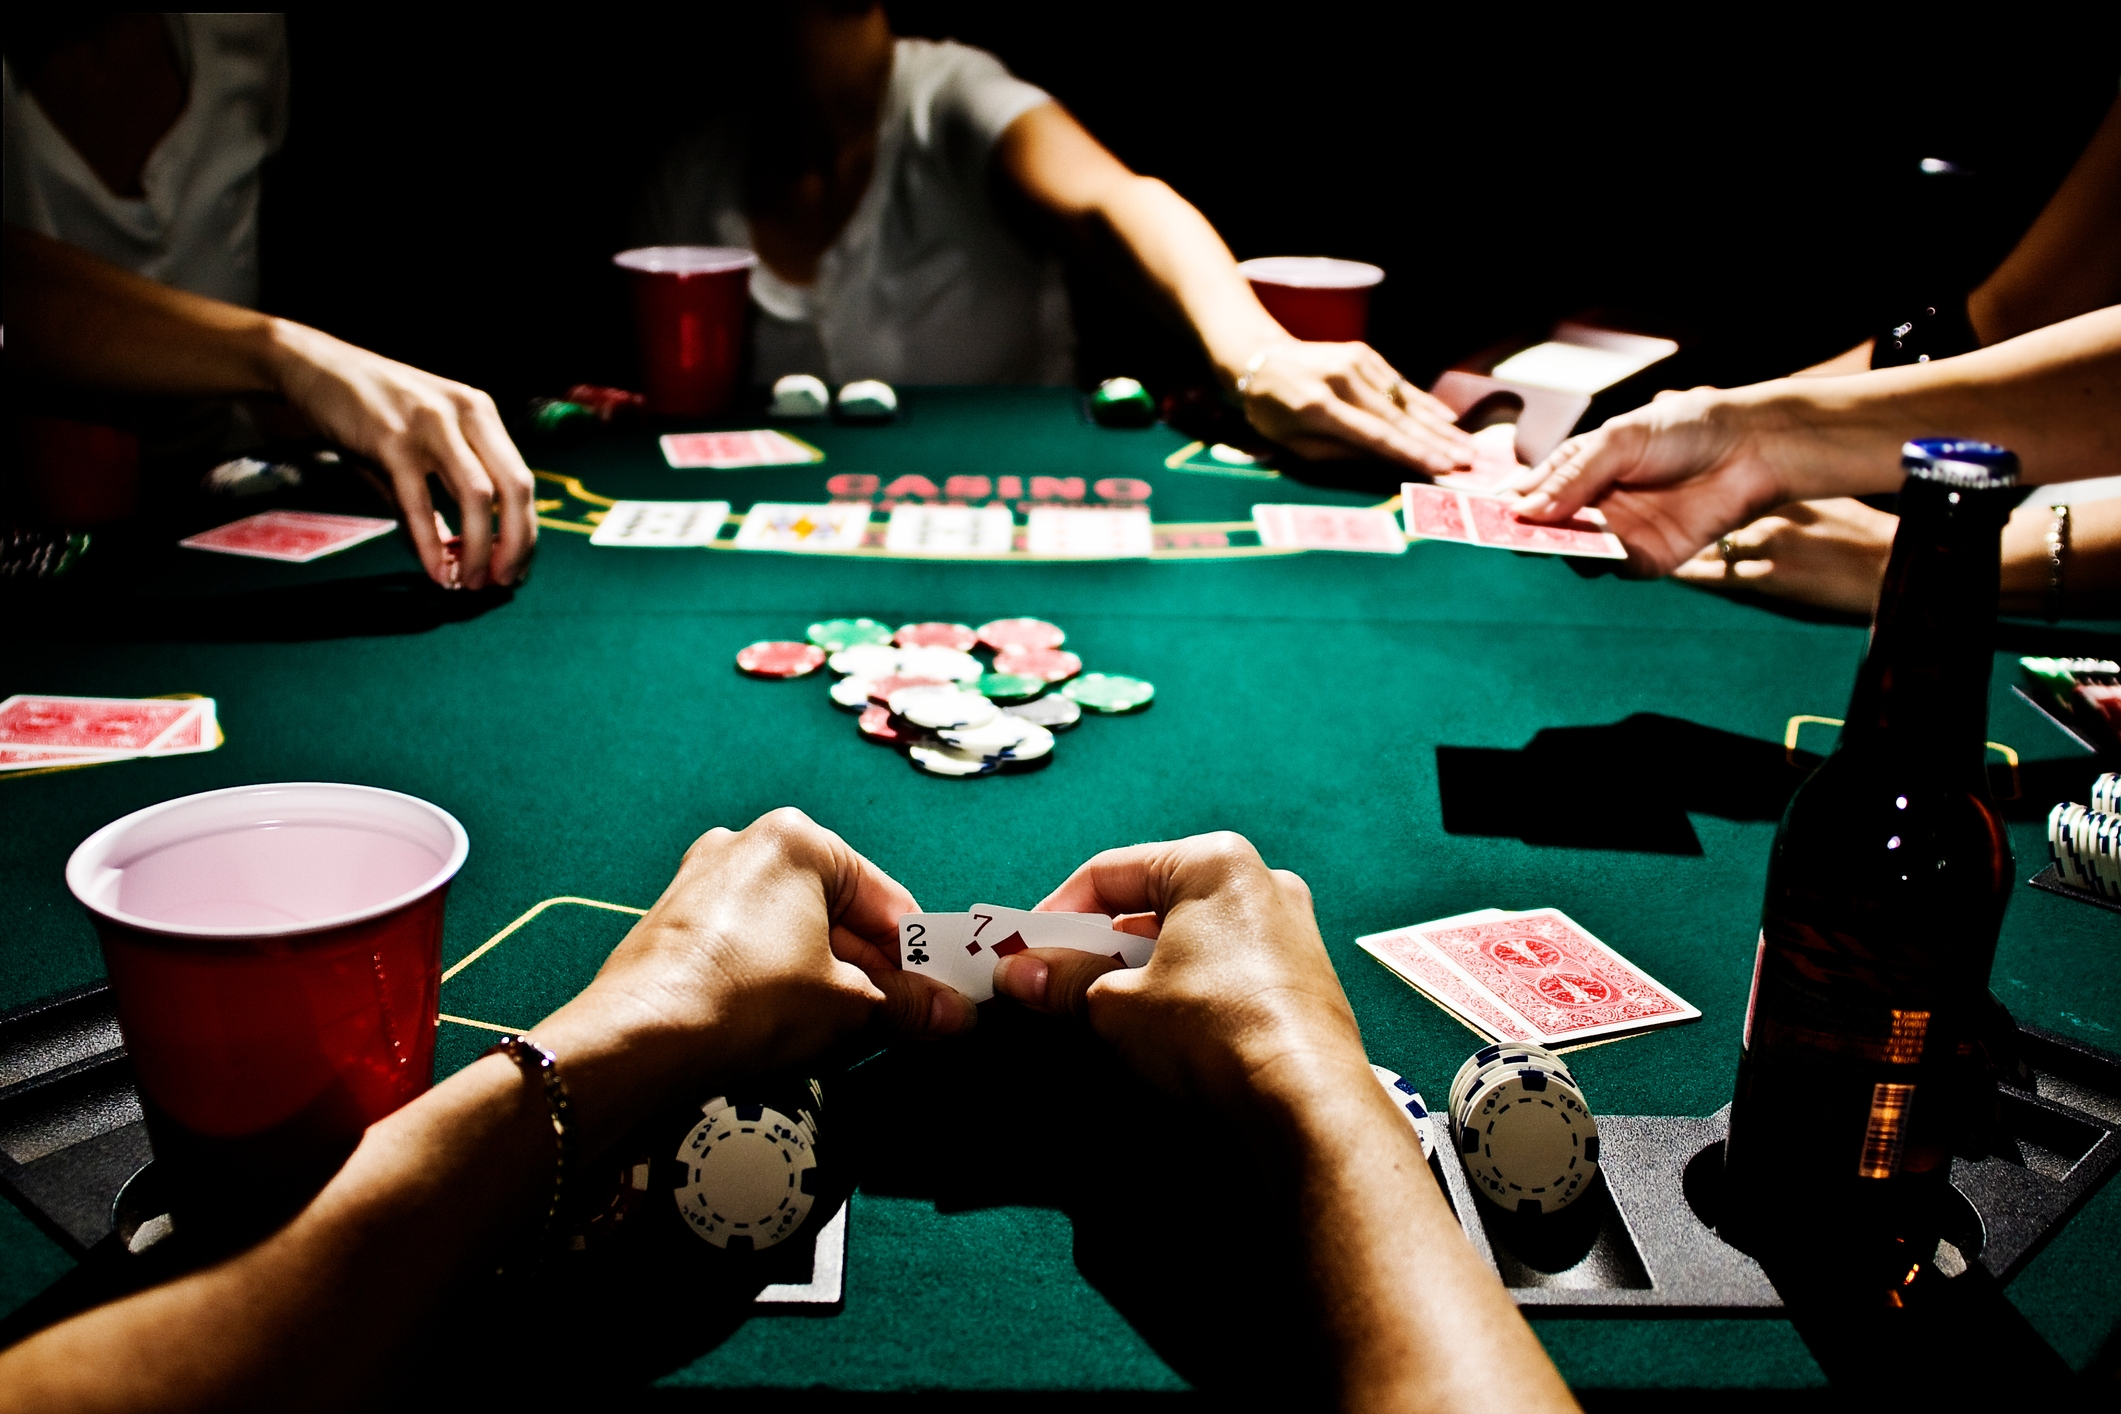 How comfortable is it to use an online casino?